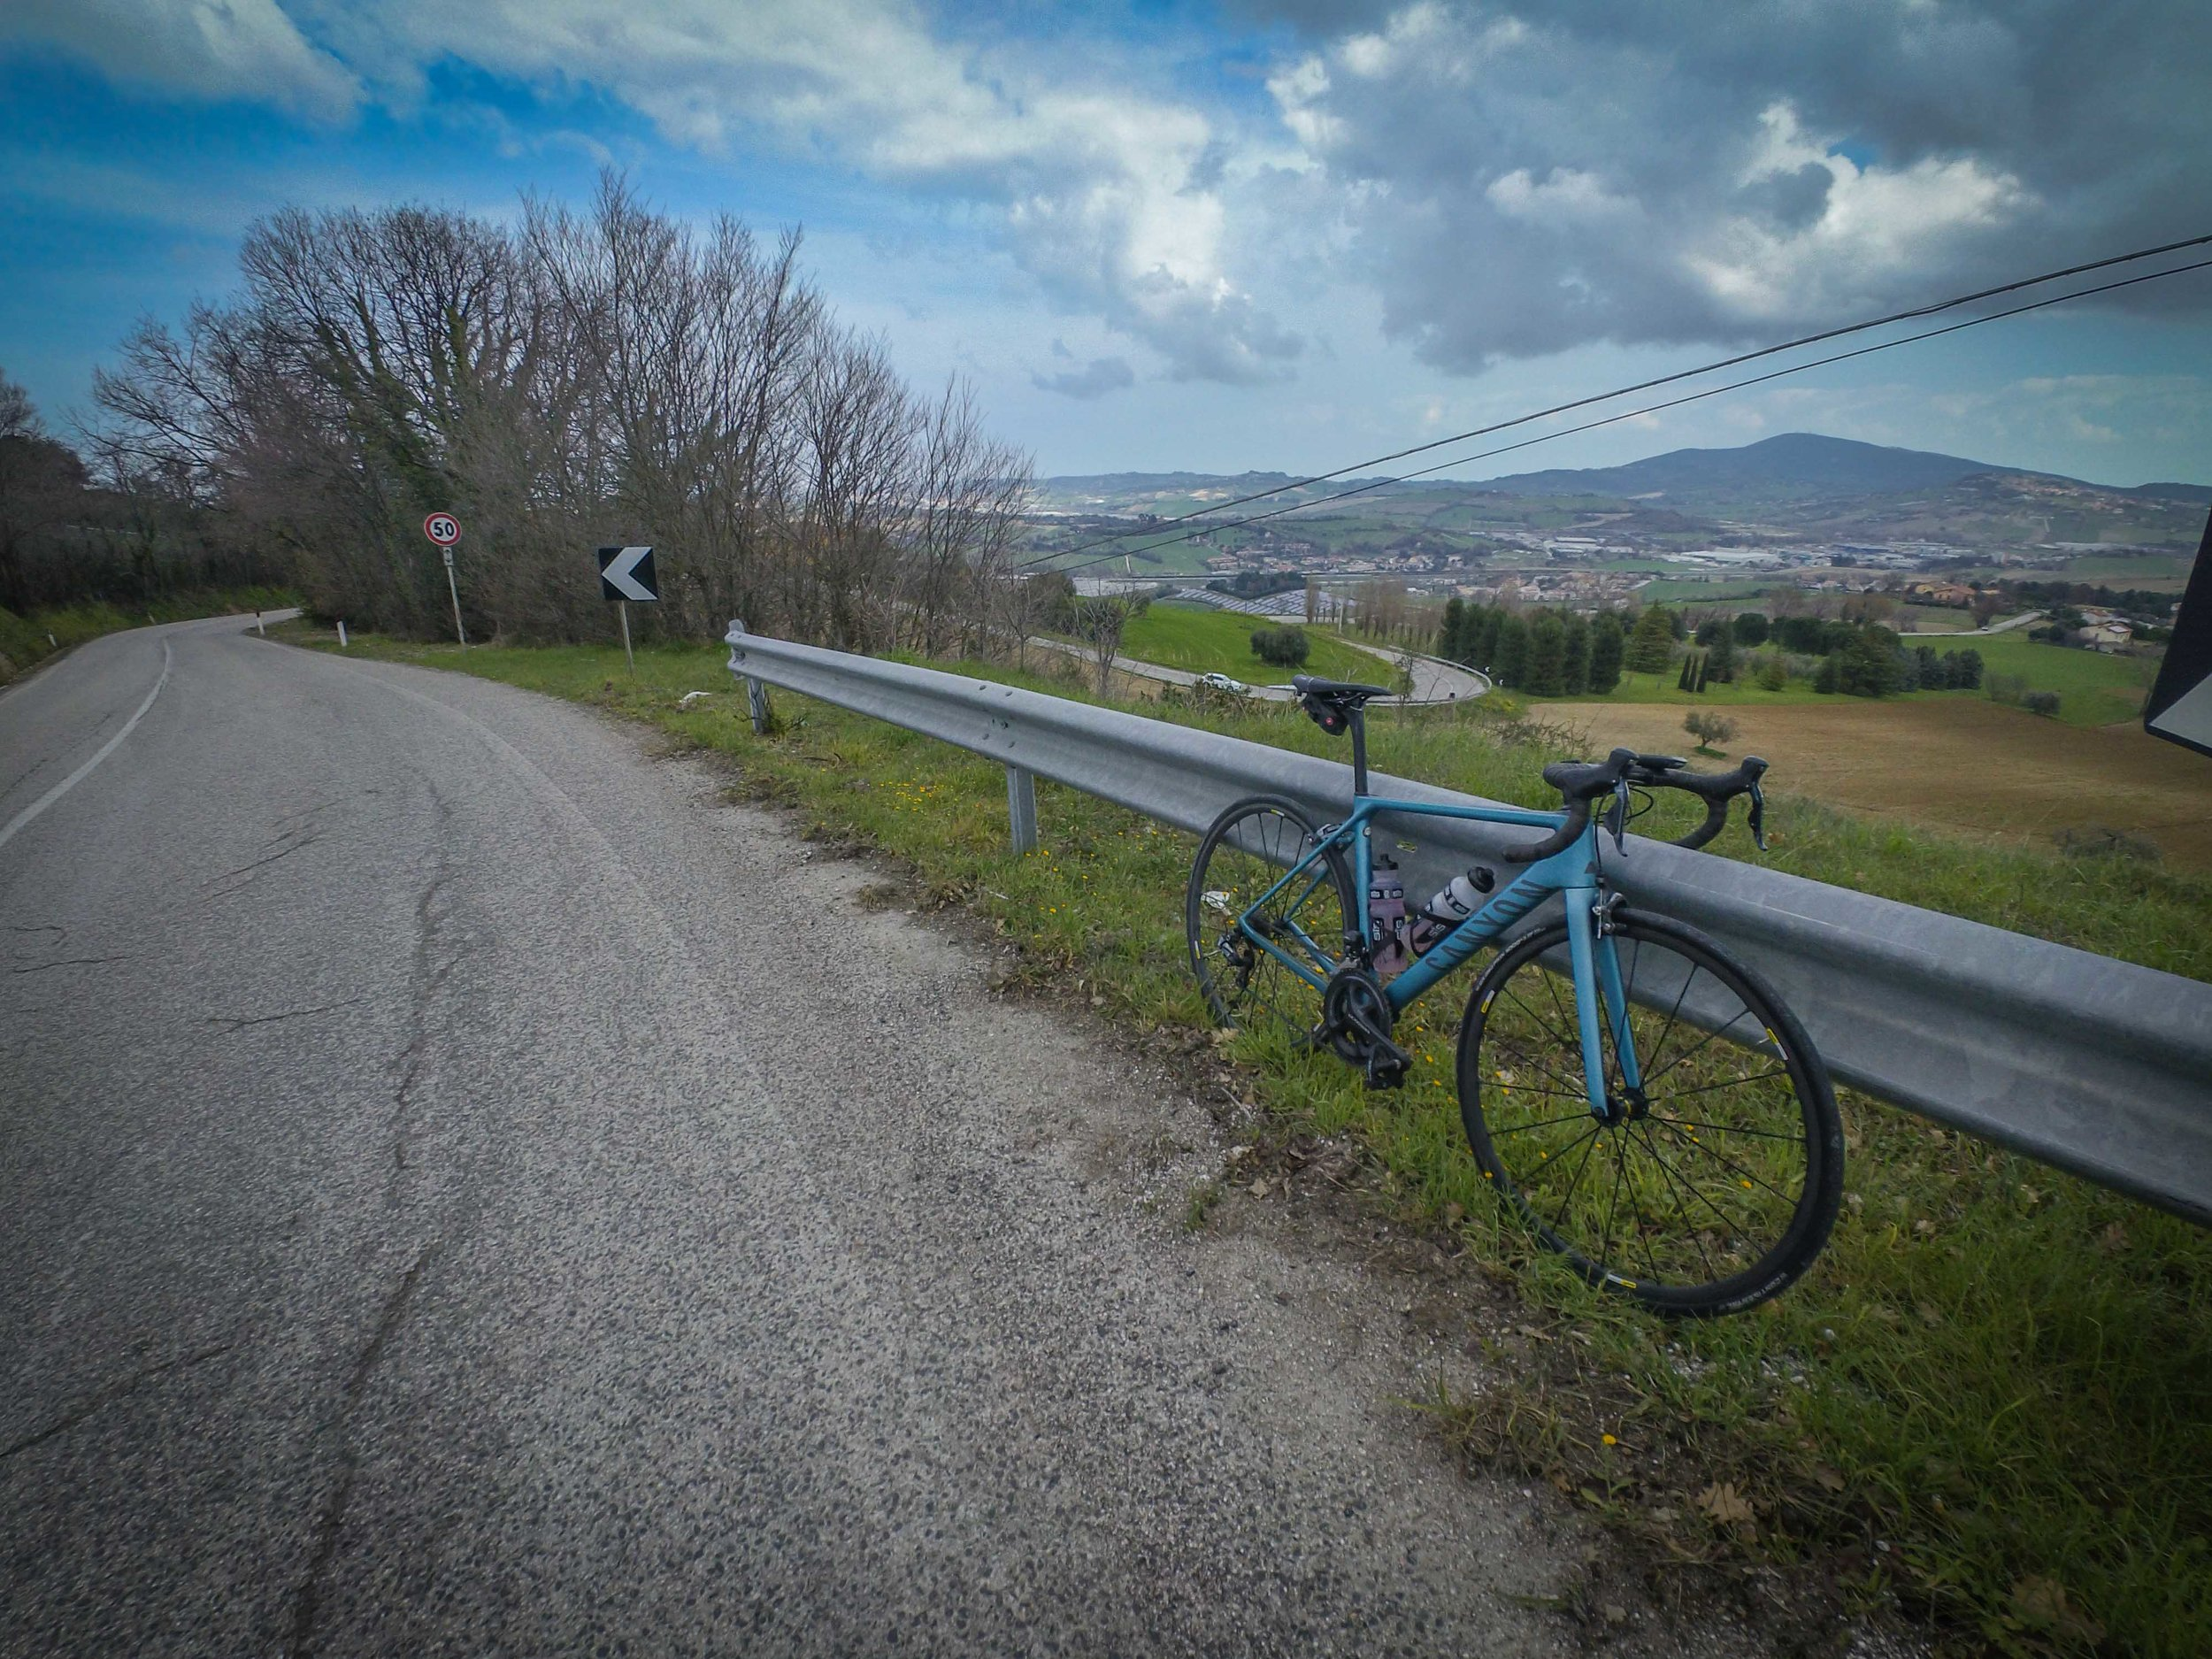 Marche really has some enjoyable small hills to ride